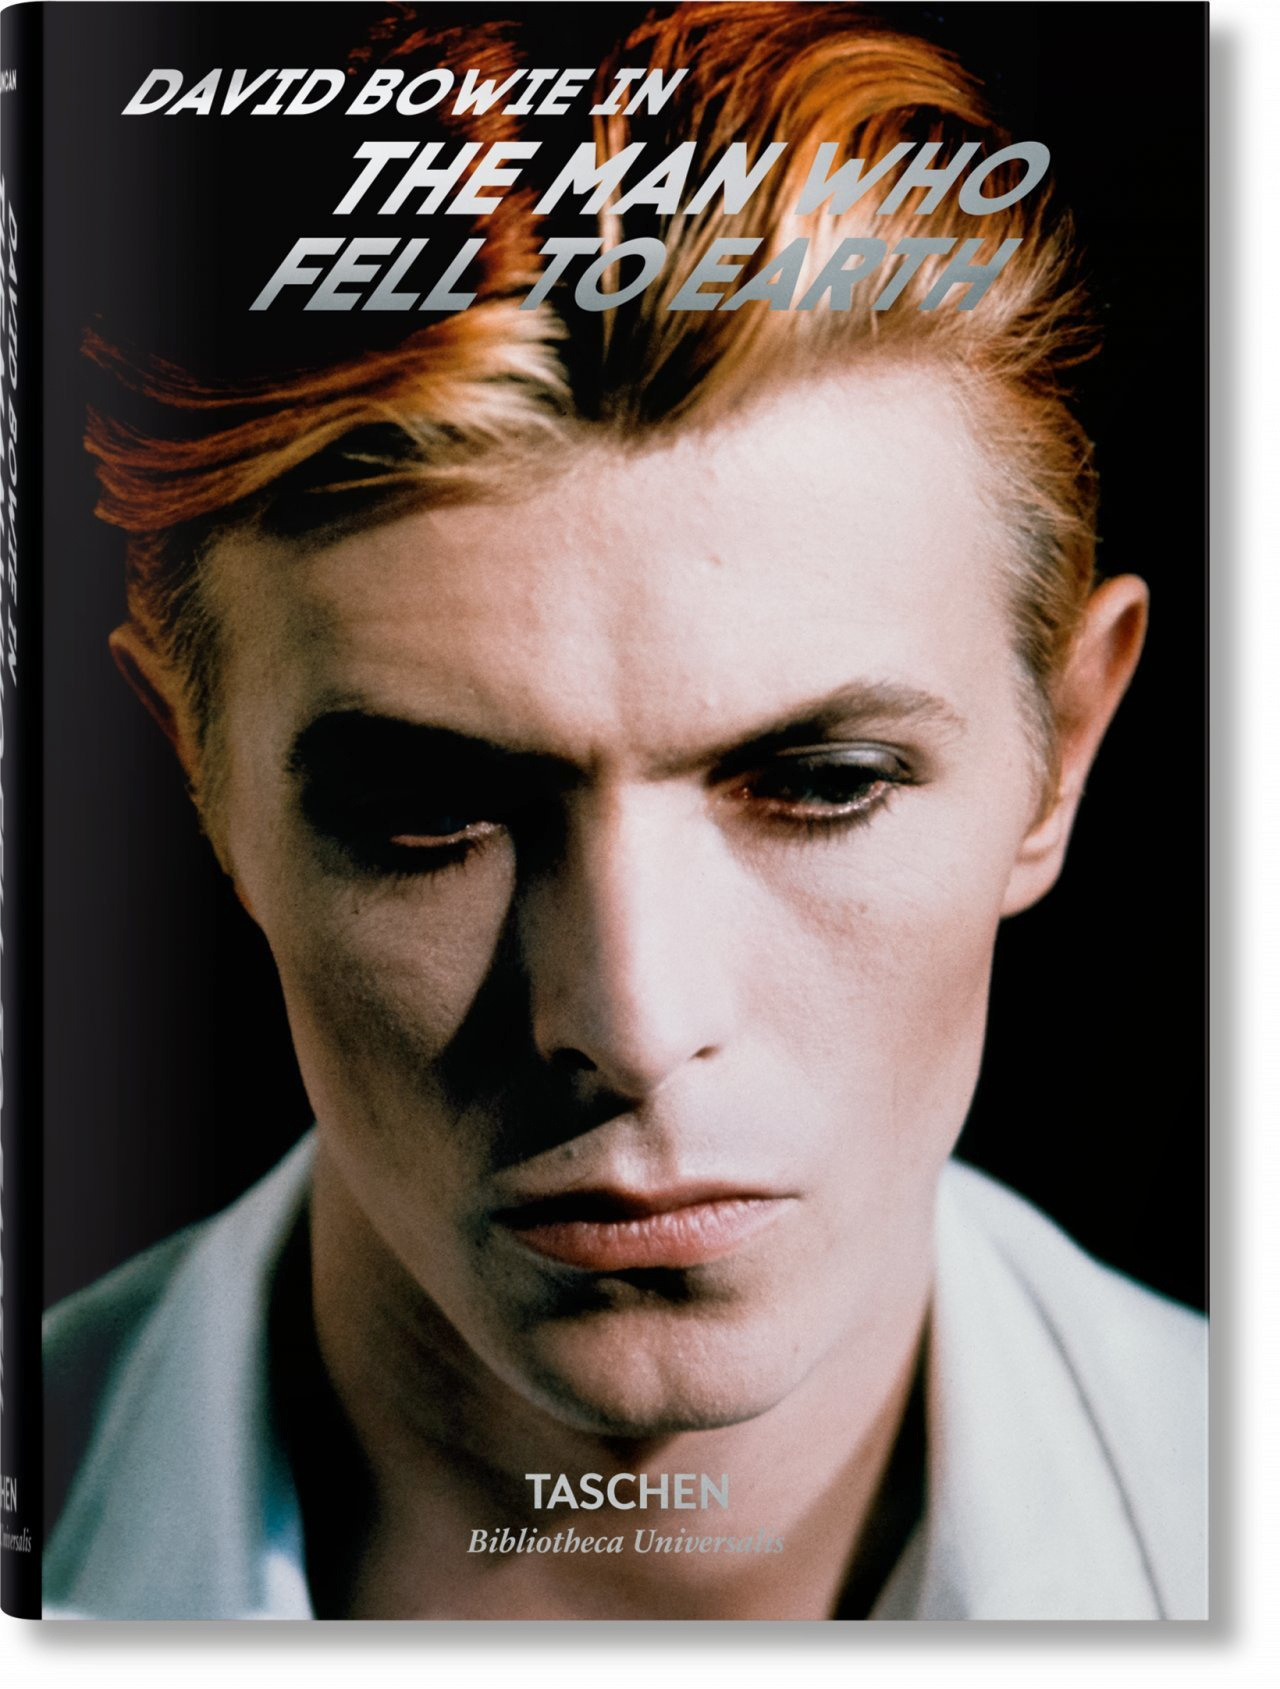 DAVID BOWIE. THE MAN WHO FELL TO EARTH - BU